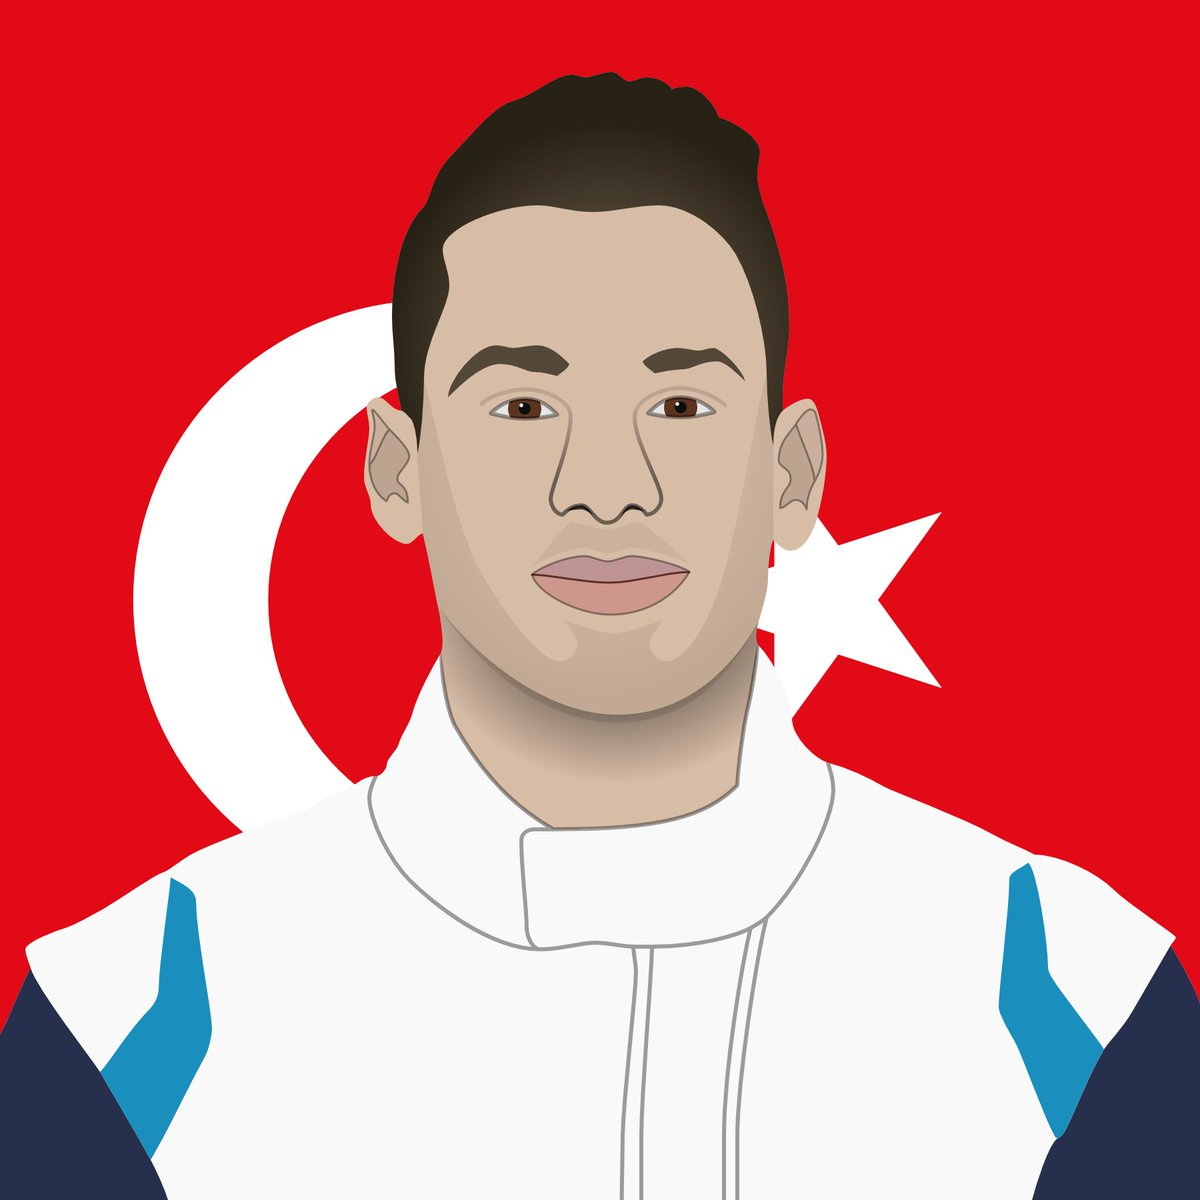 ⭐️ F1 Esports Special Project · Portraits  🇹🇷 Cem Bolukbasi  After being part of the #F1Esports series in 2017-2019, Cem is currently racing in #GT4Europe in the #12 BMW M4 entered by Borusan Otomotiv Motorsport  #vectorgraphics 👨‍💻 https://t.co/fURTf8WBkH